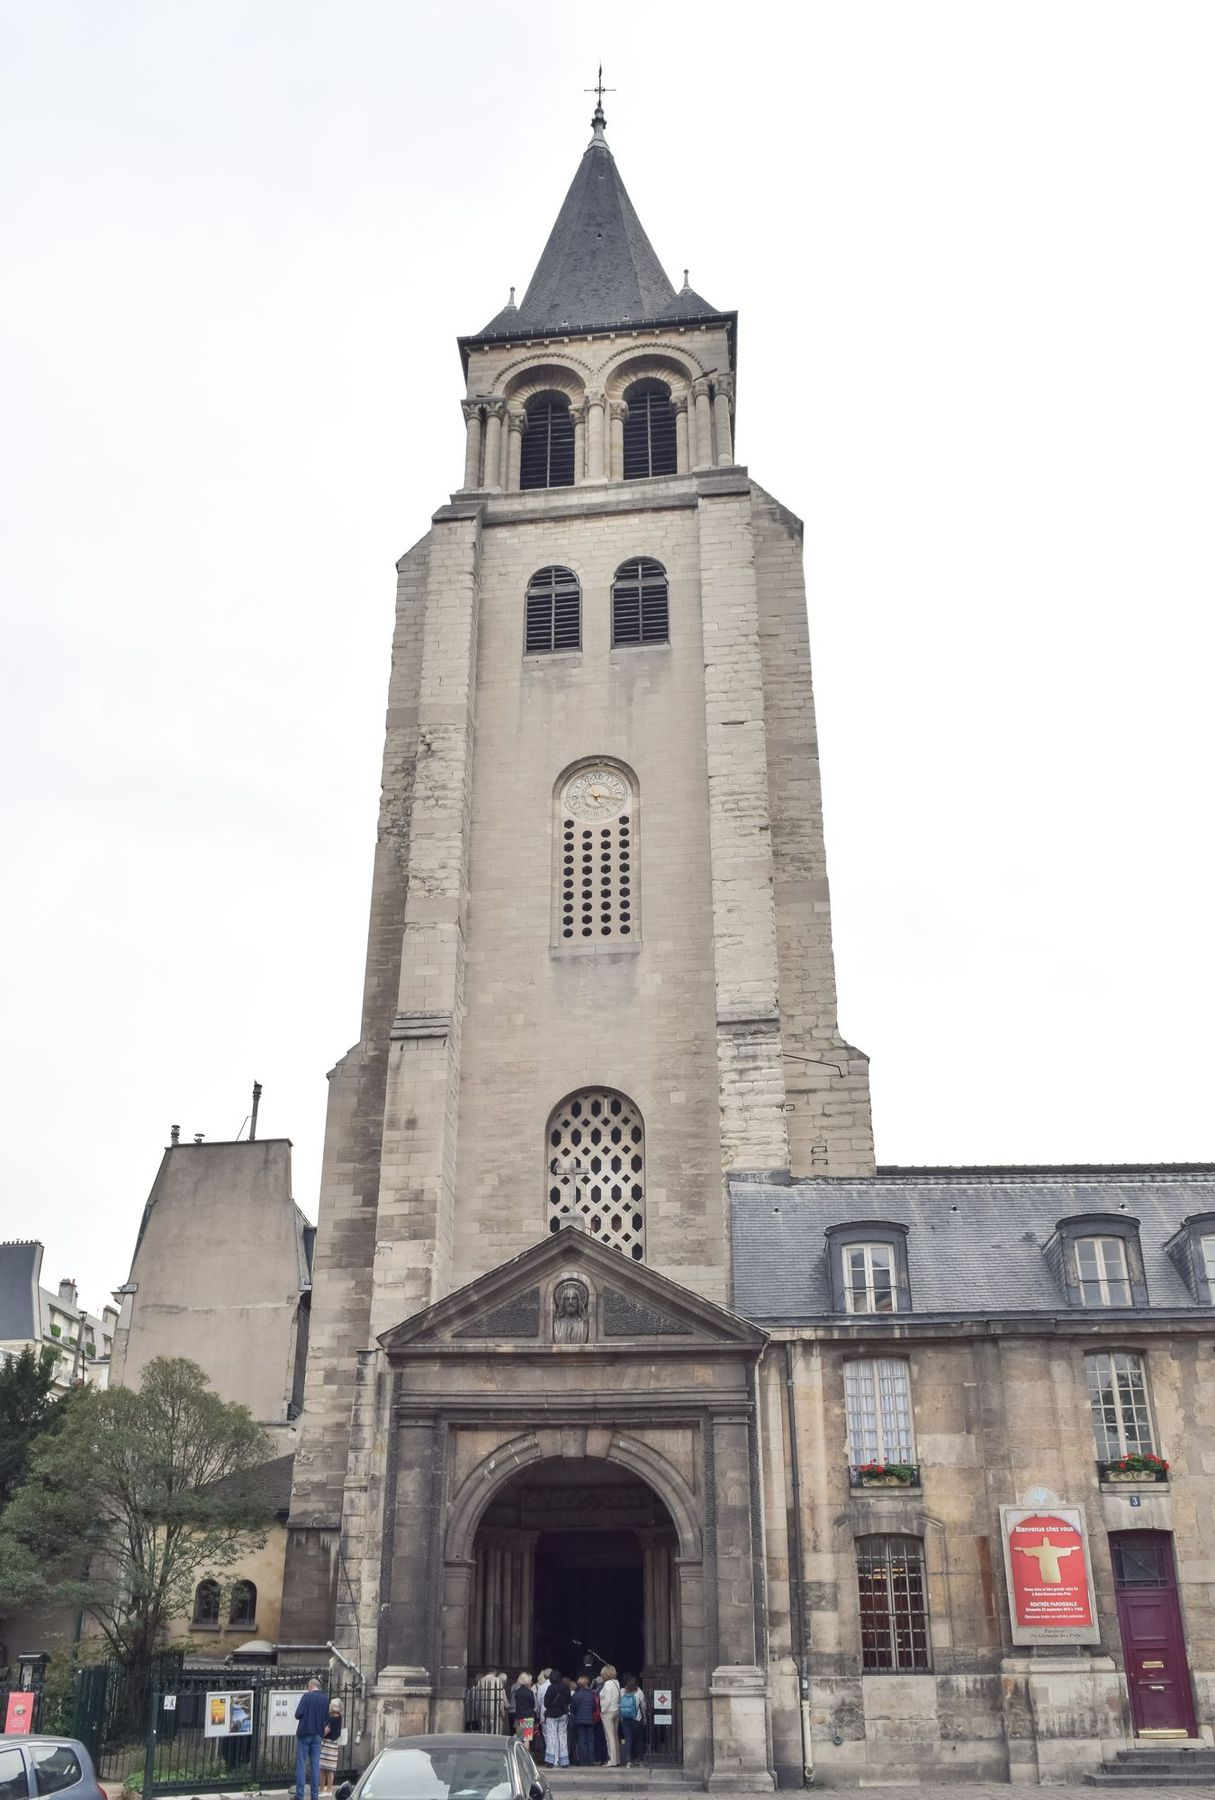 Saint-Germain-des-Près Church, Paris